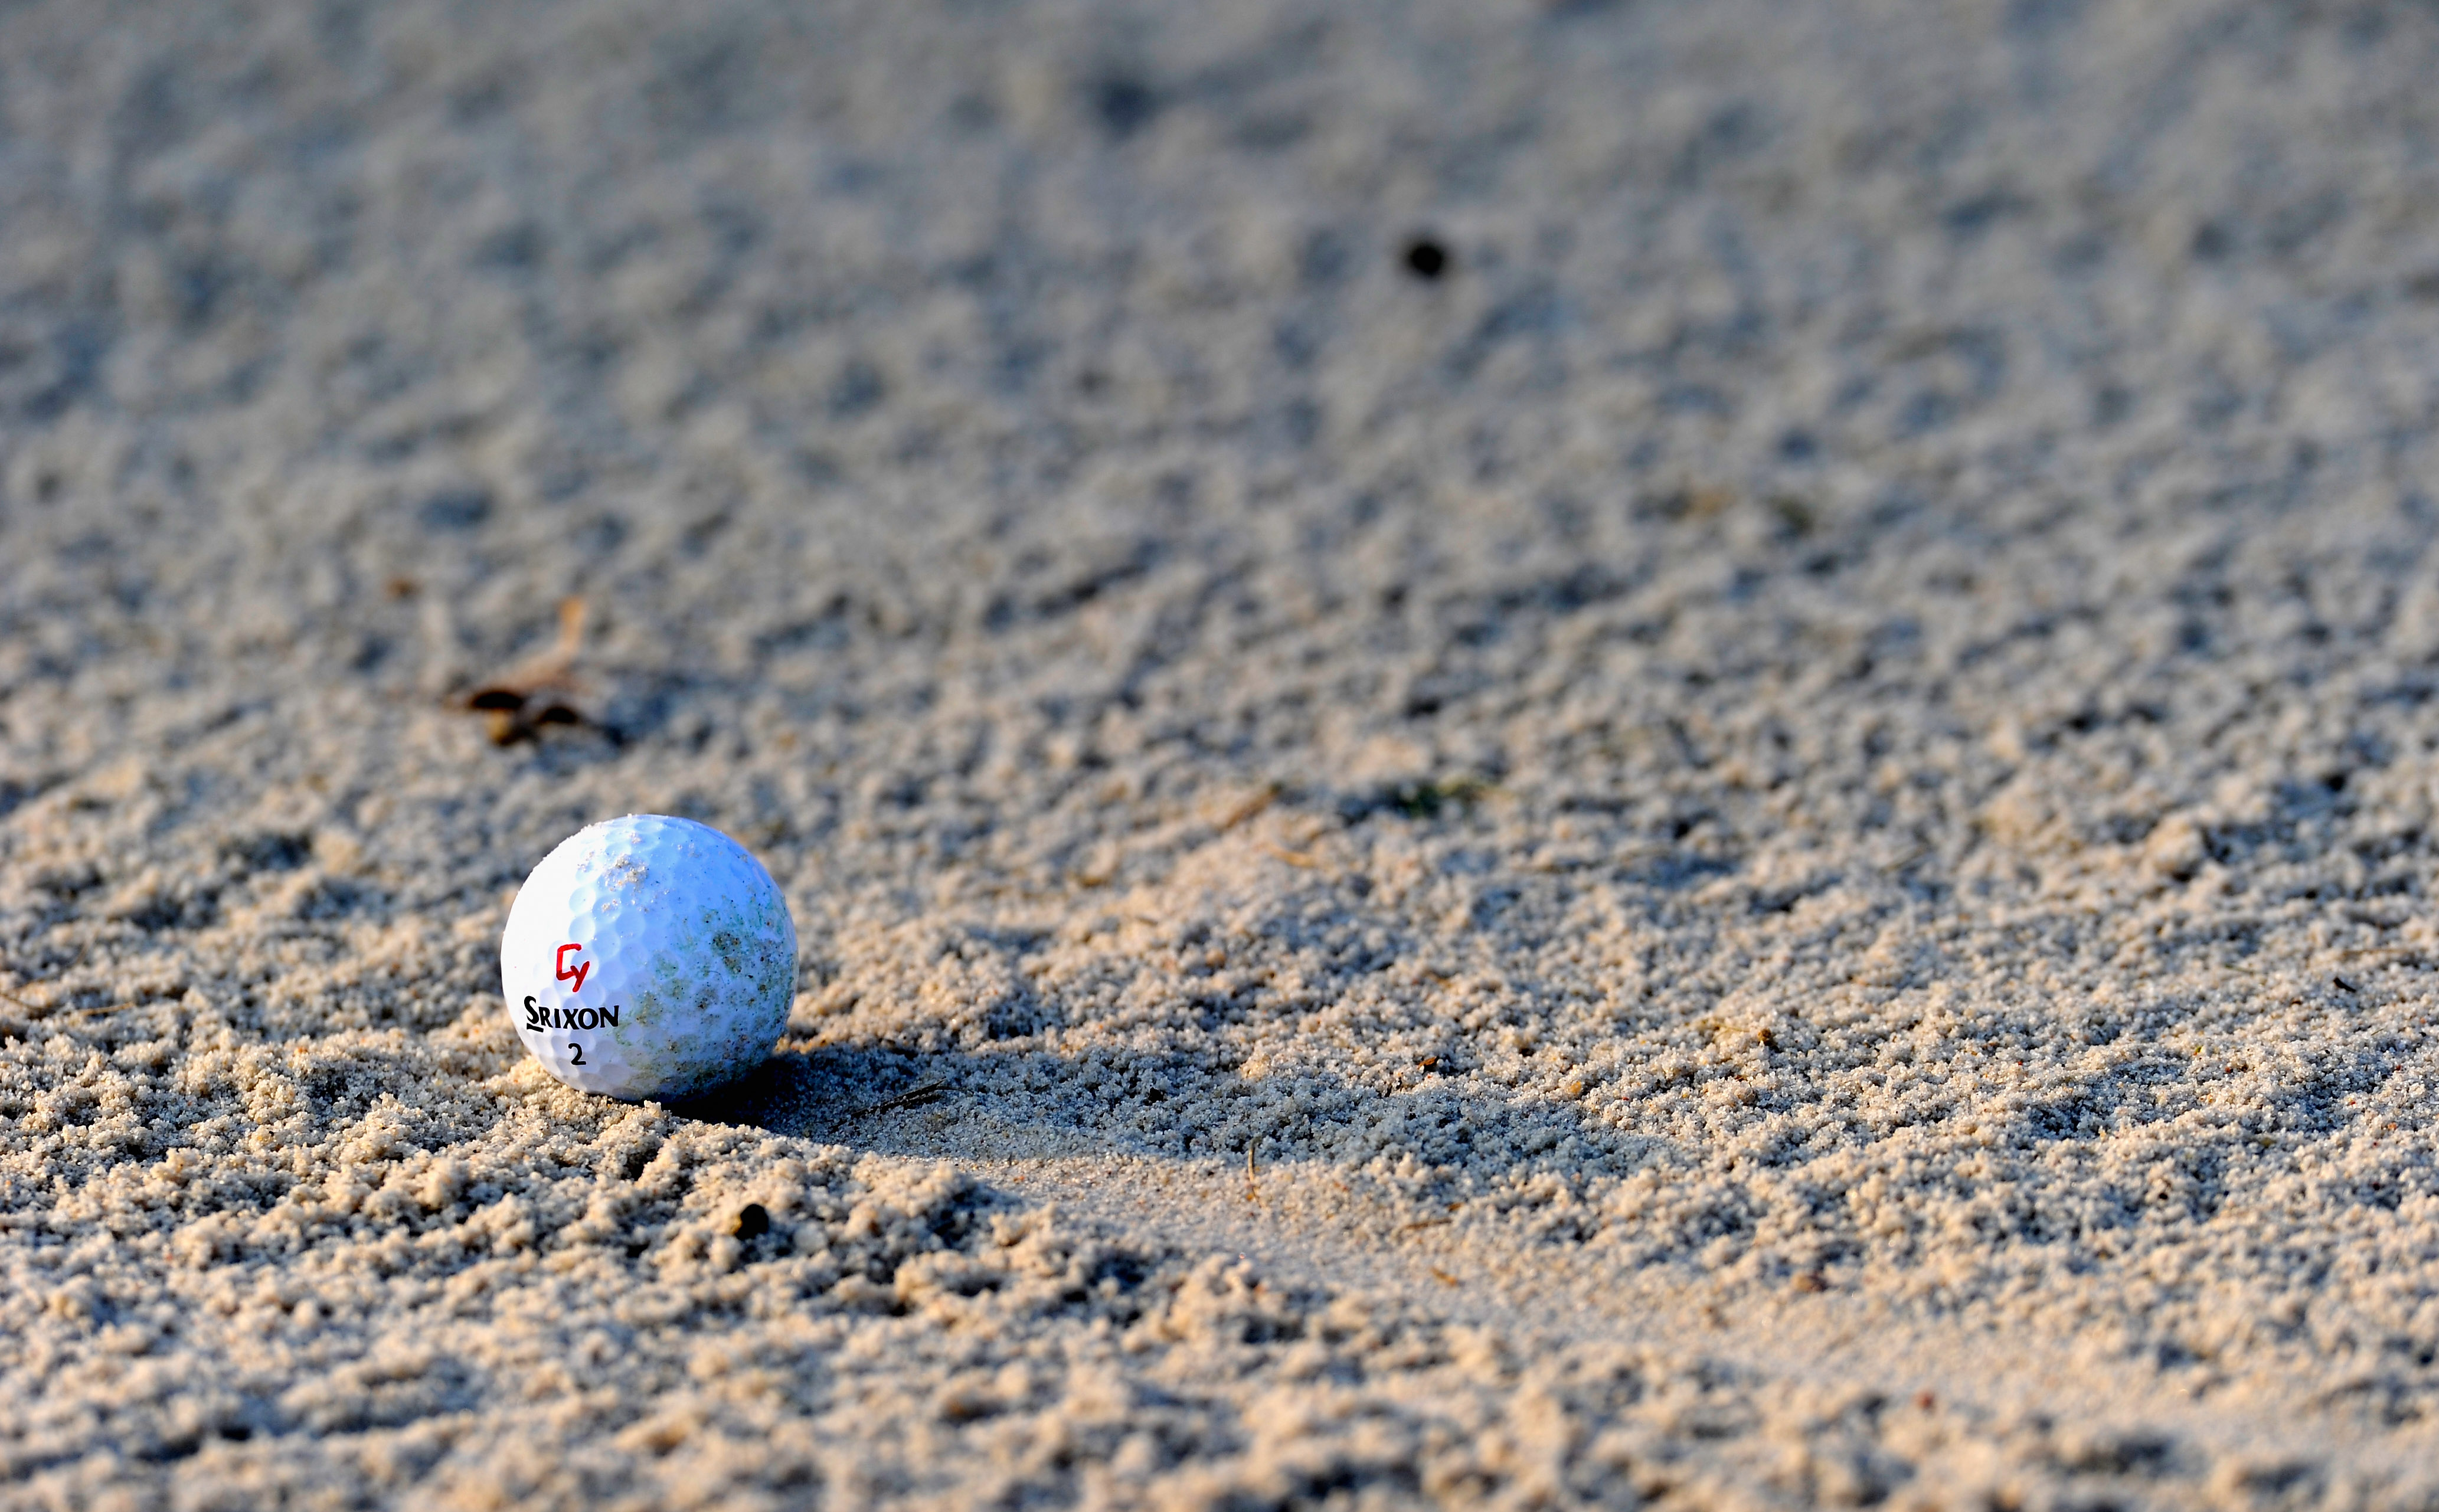 GIRONA, SPAIN - DECEMBER 10:  A ball in a bunker during the final round of the European Tour qualifying school final stage at PGA golf de Catalunya on December 10, 2010 in Girona, Spain.  (Photo by Stuart Franklin/Getty Images)